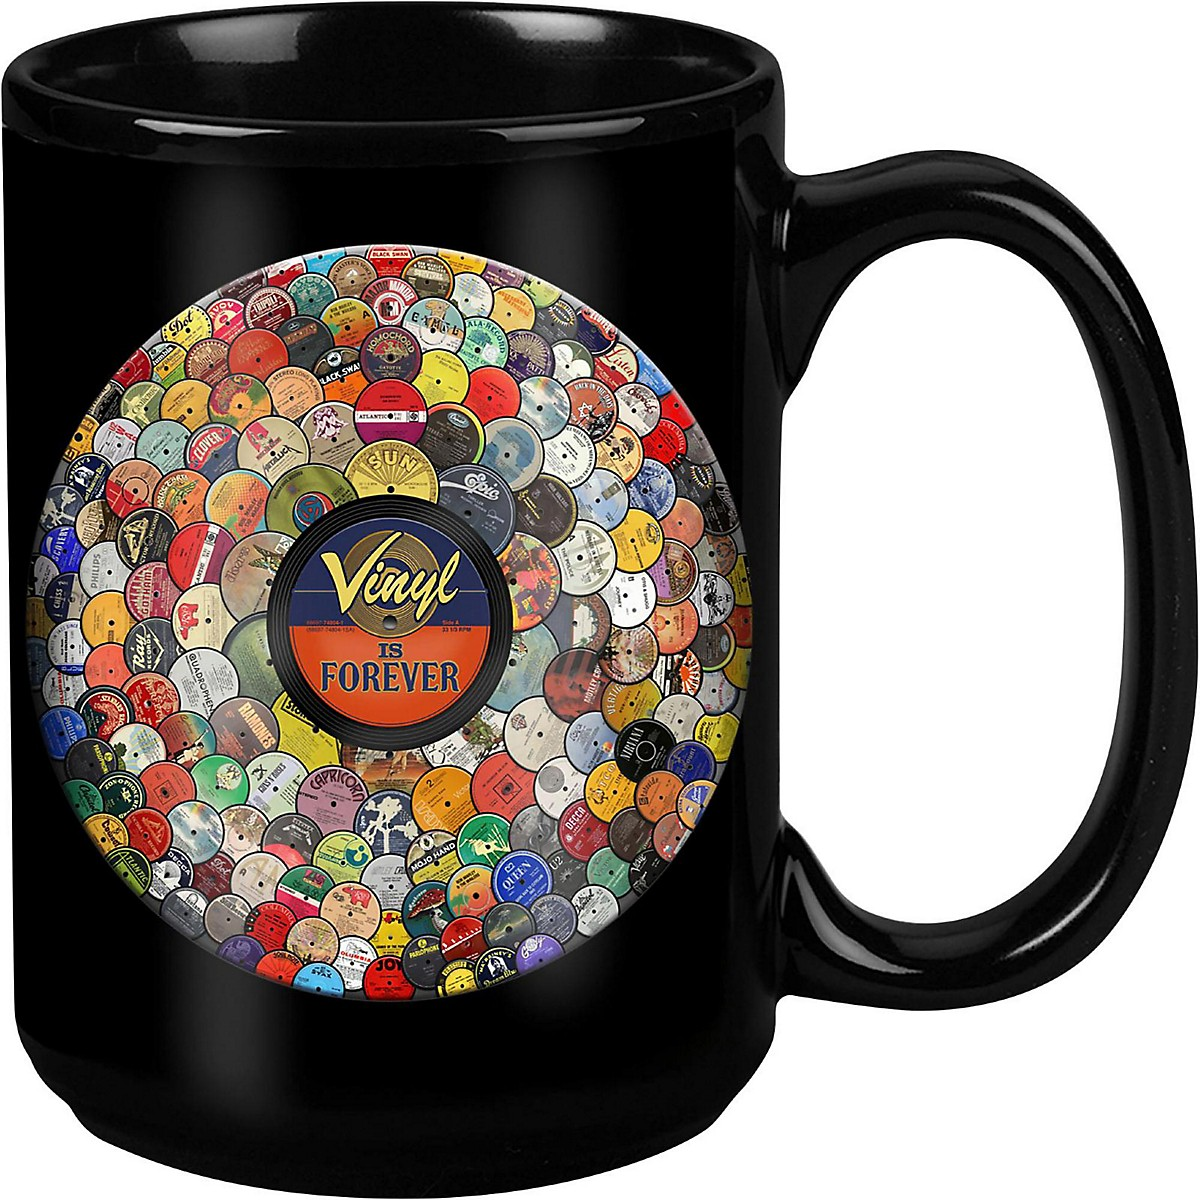 Taboo Vinyl Is Forever Black Mug 15 oz